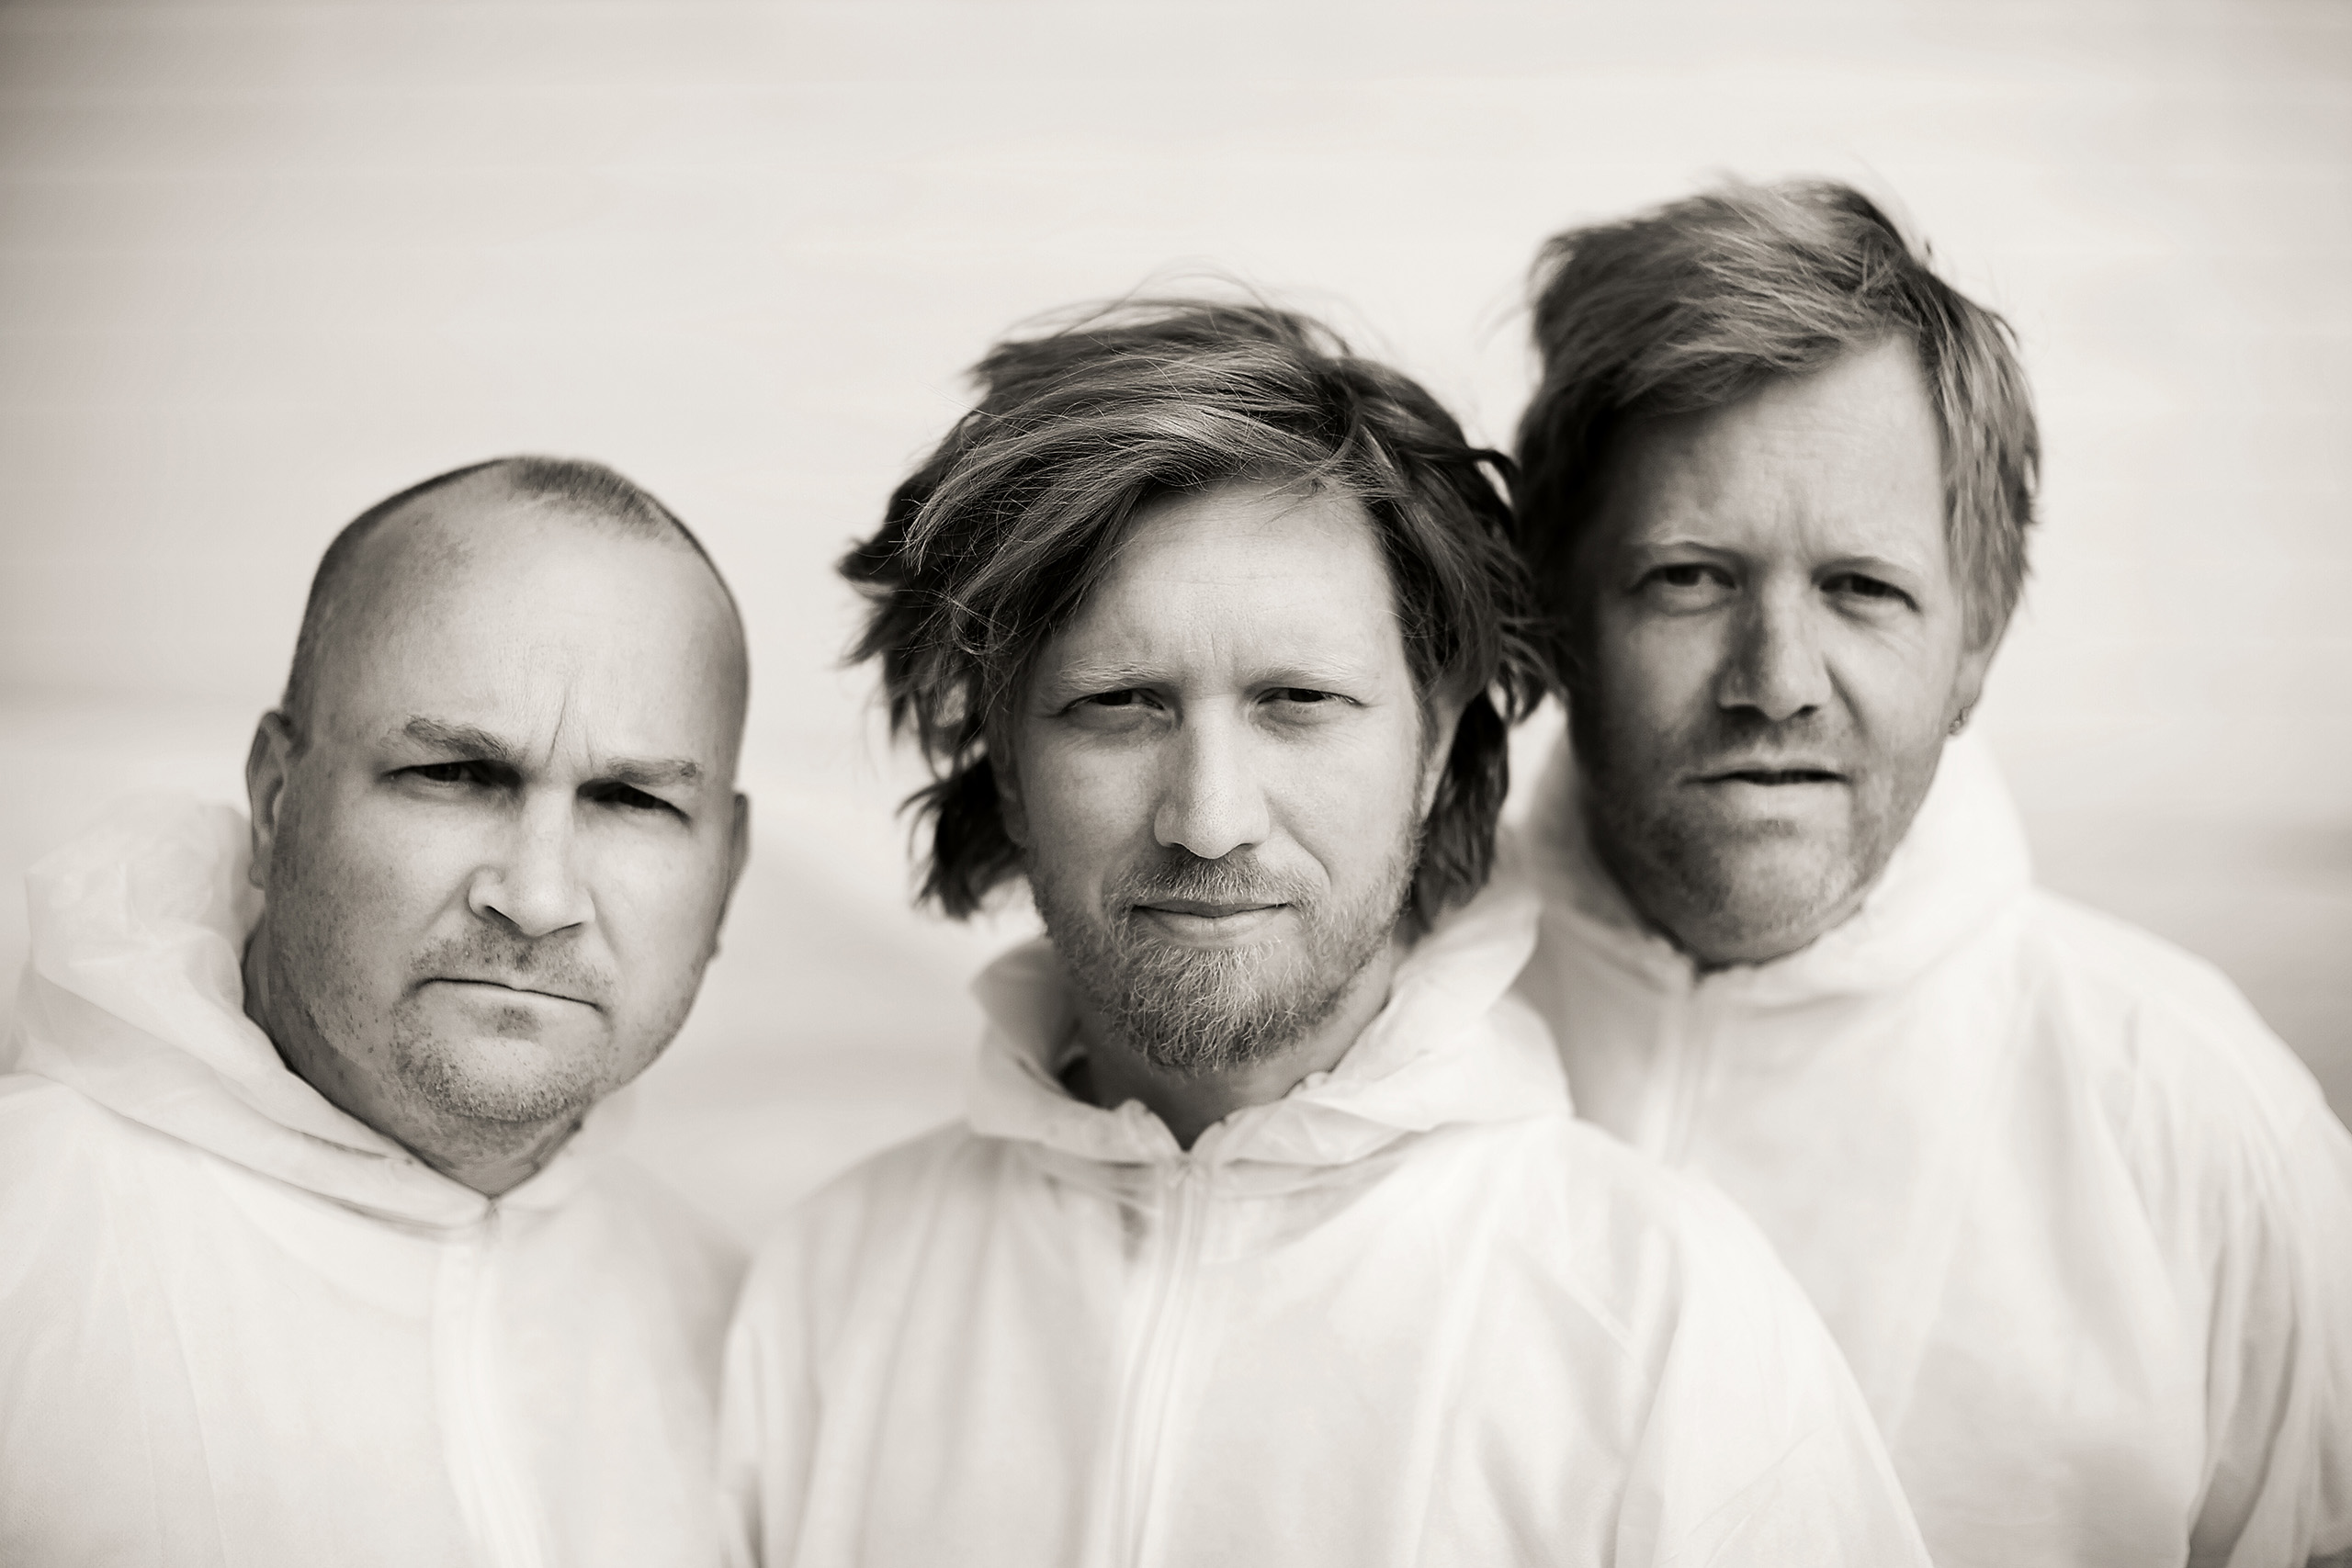 Photo of the Helge Lien Trio musicians: Frode Berg, Helge Lien and Per Oddvar Johansen in white overalls. Black and white with a tint of sepia.